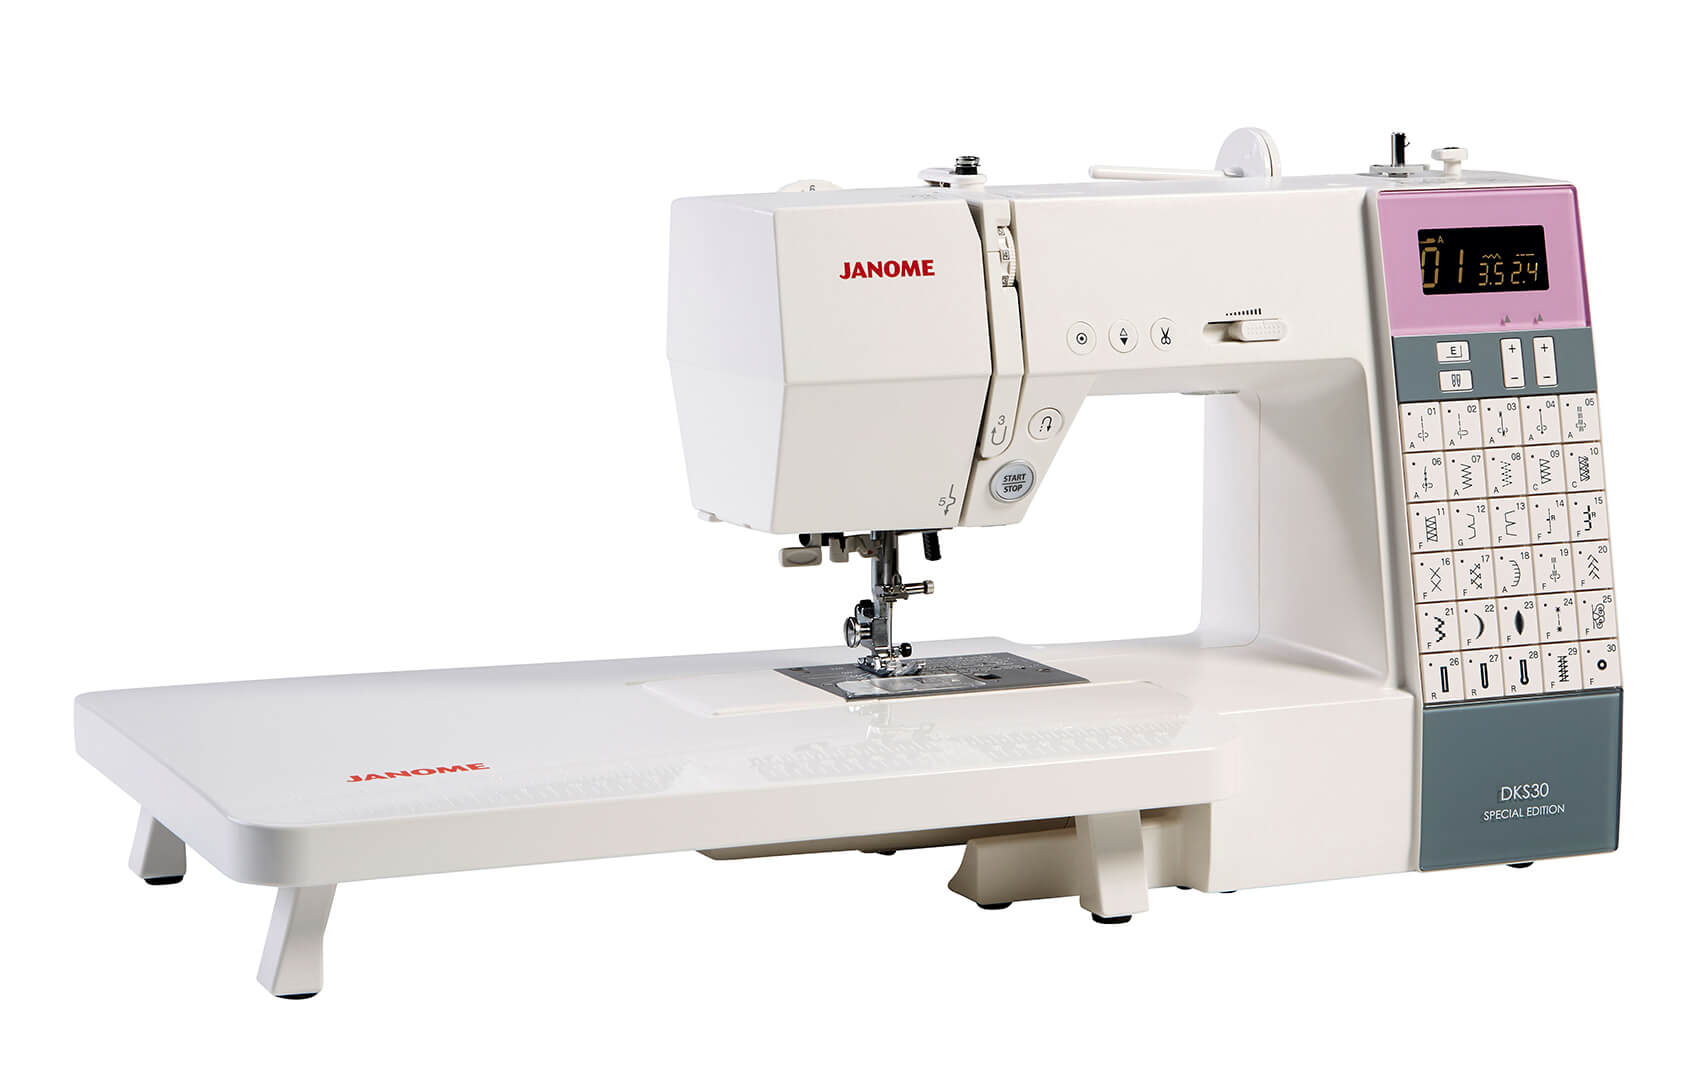 janome dks30 special edition sewing machine new forest fabrics. Black Bedroom Furniture Sets. Home Design Ideas